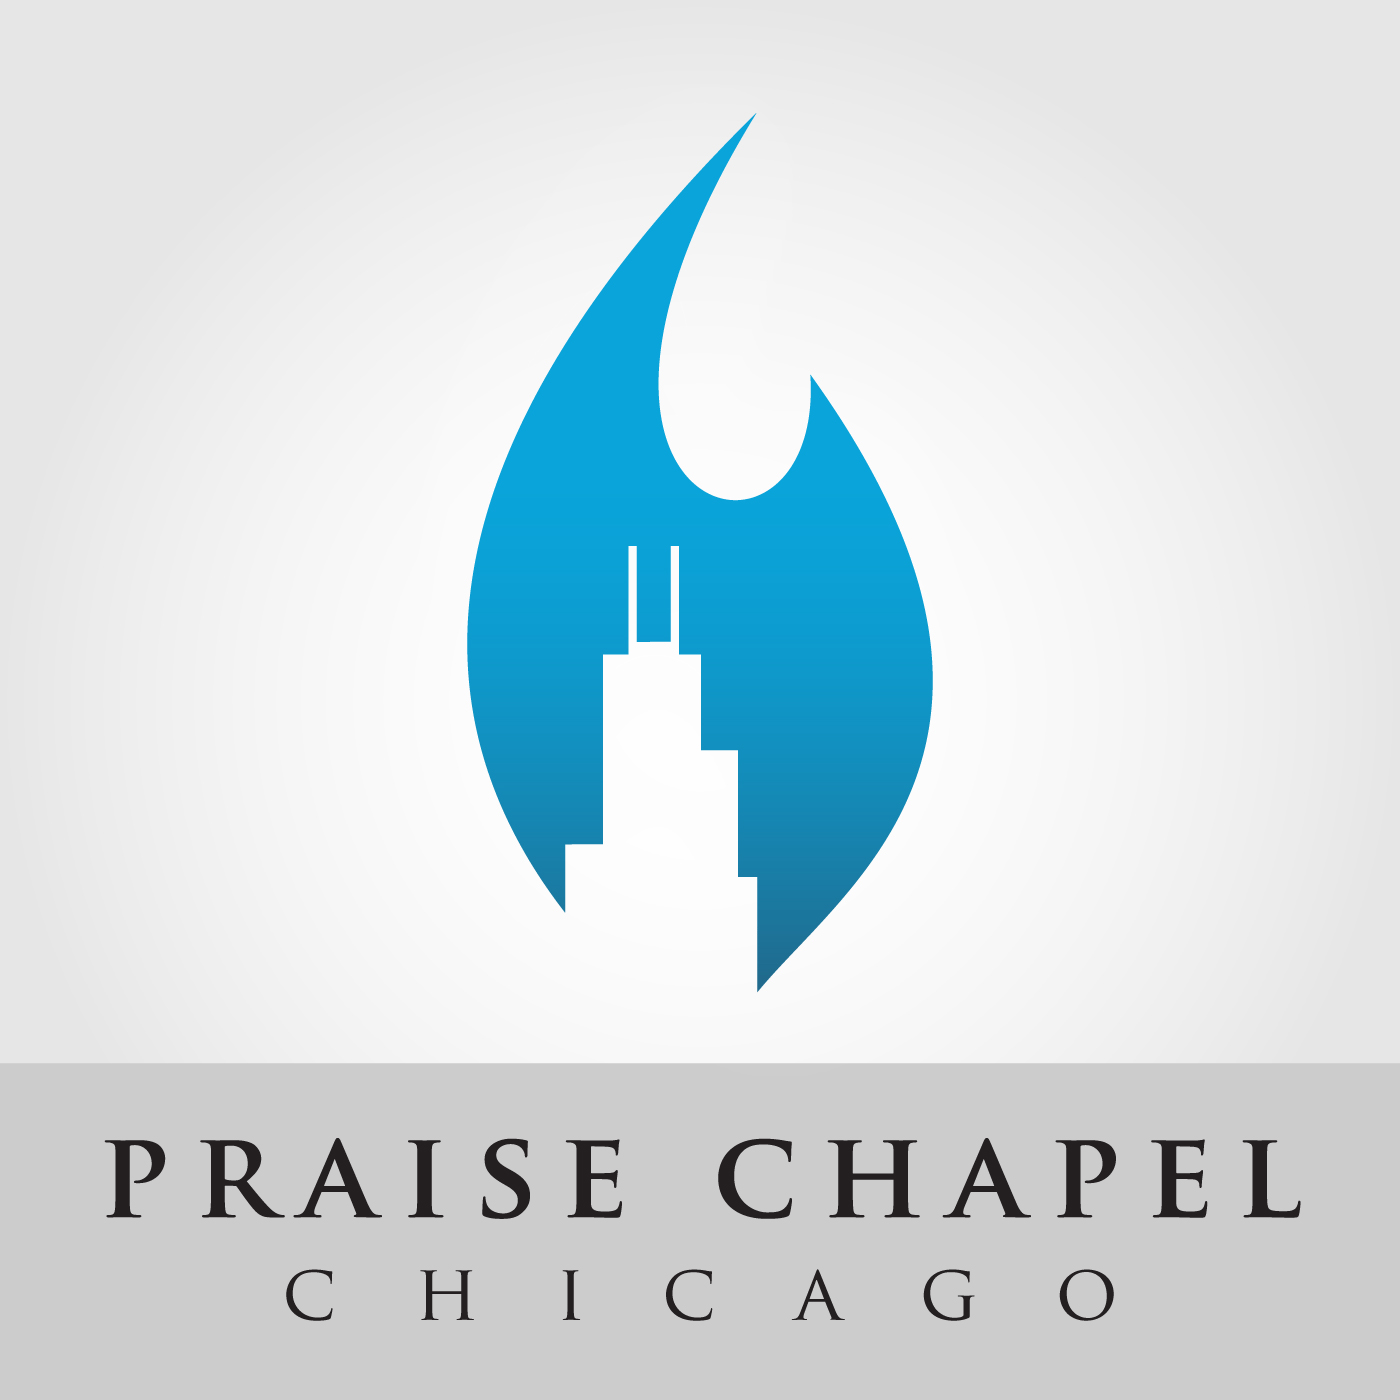 Praise Chapel Chicago